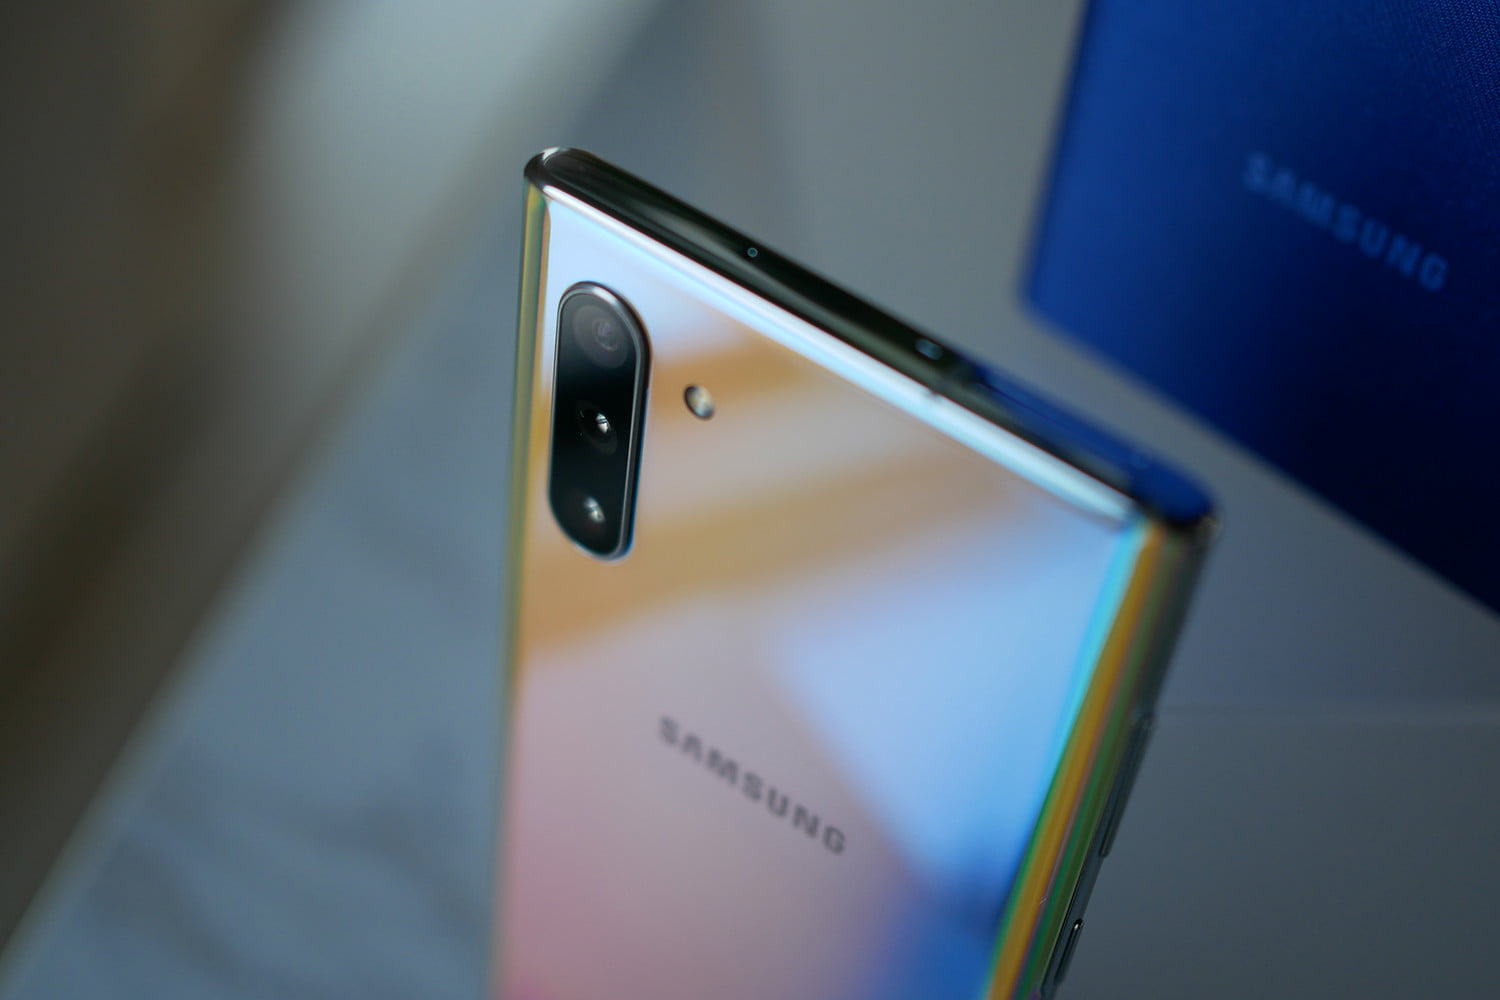 Samsung Galaxy Note 10 and Note 10 Plus: Key settings you need to change